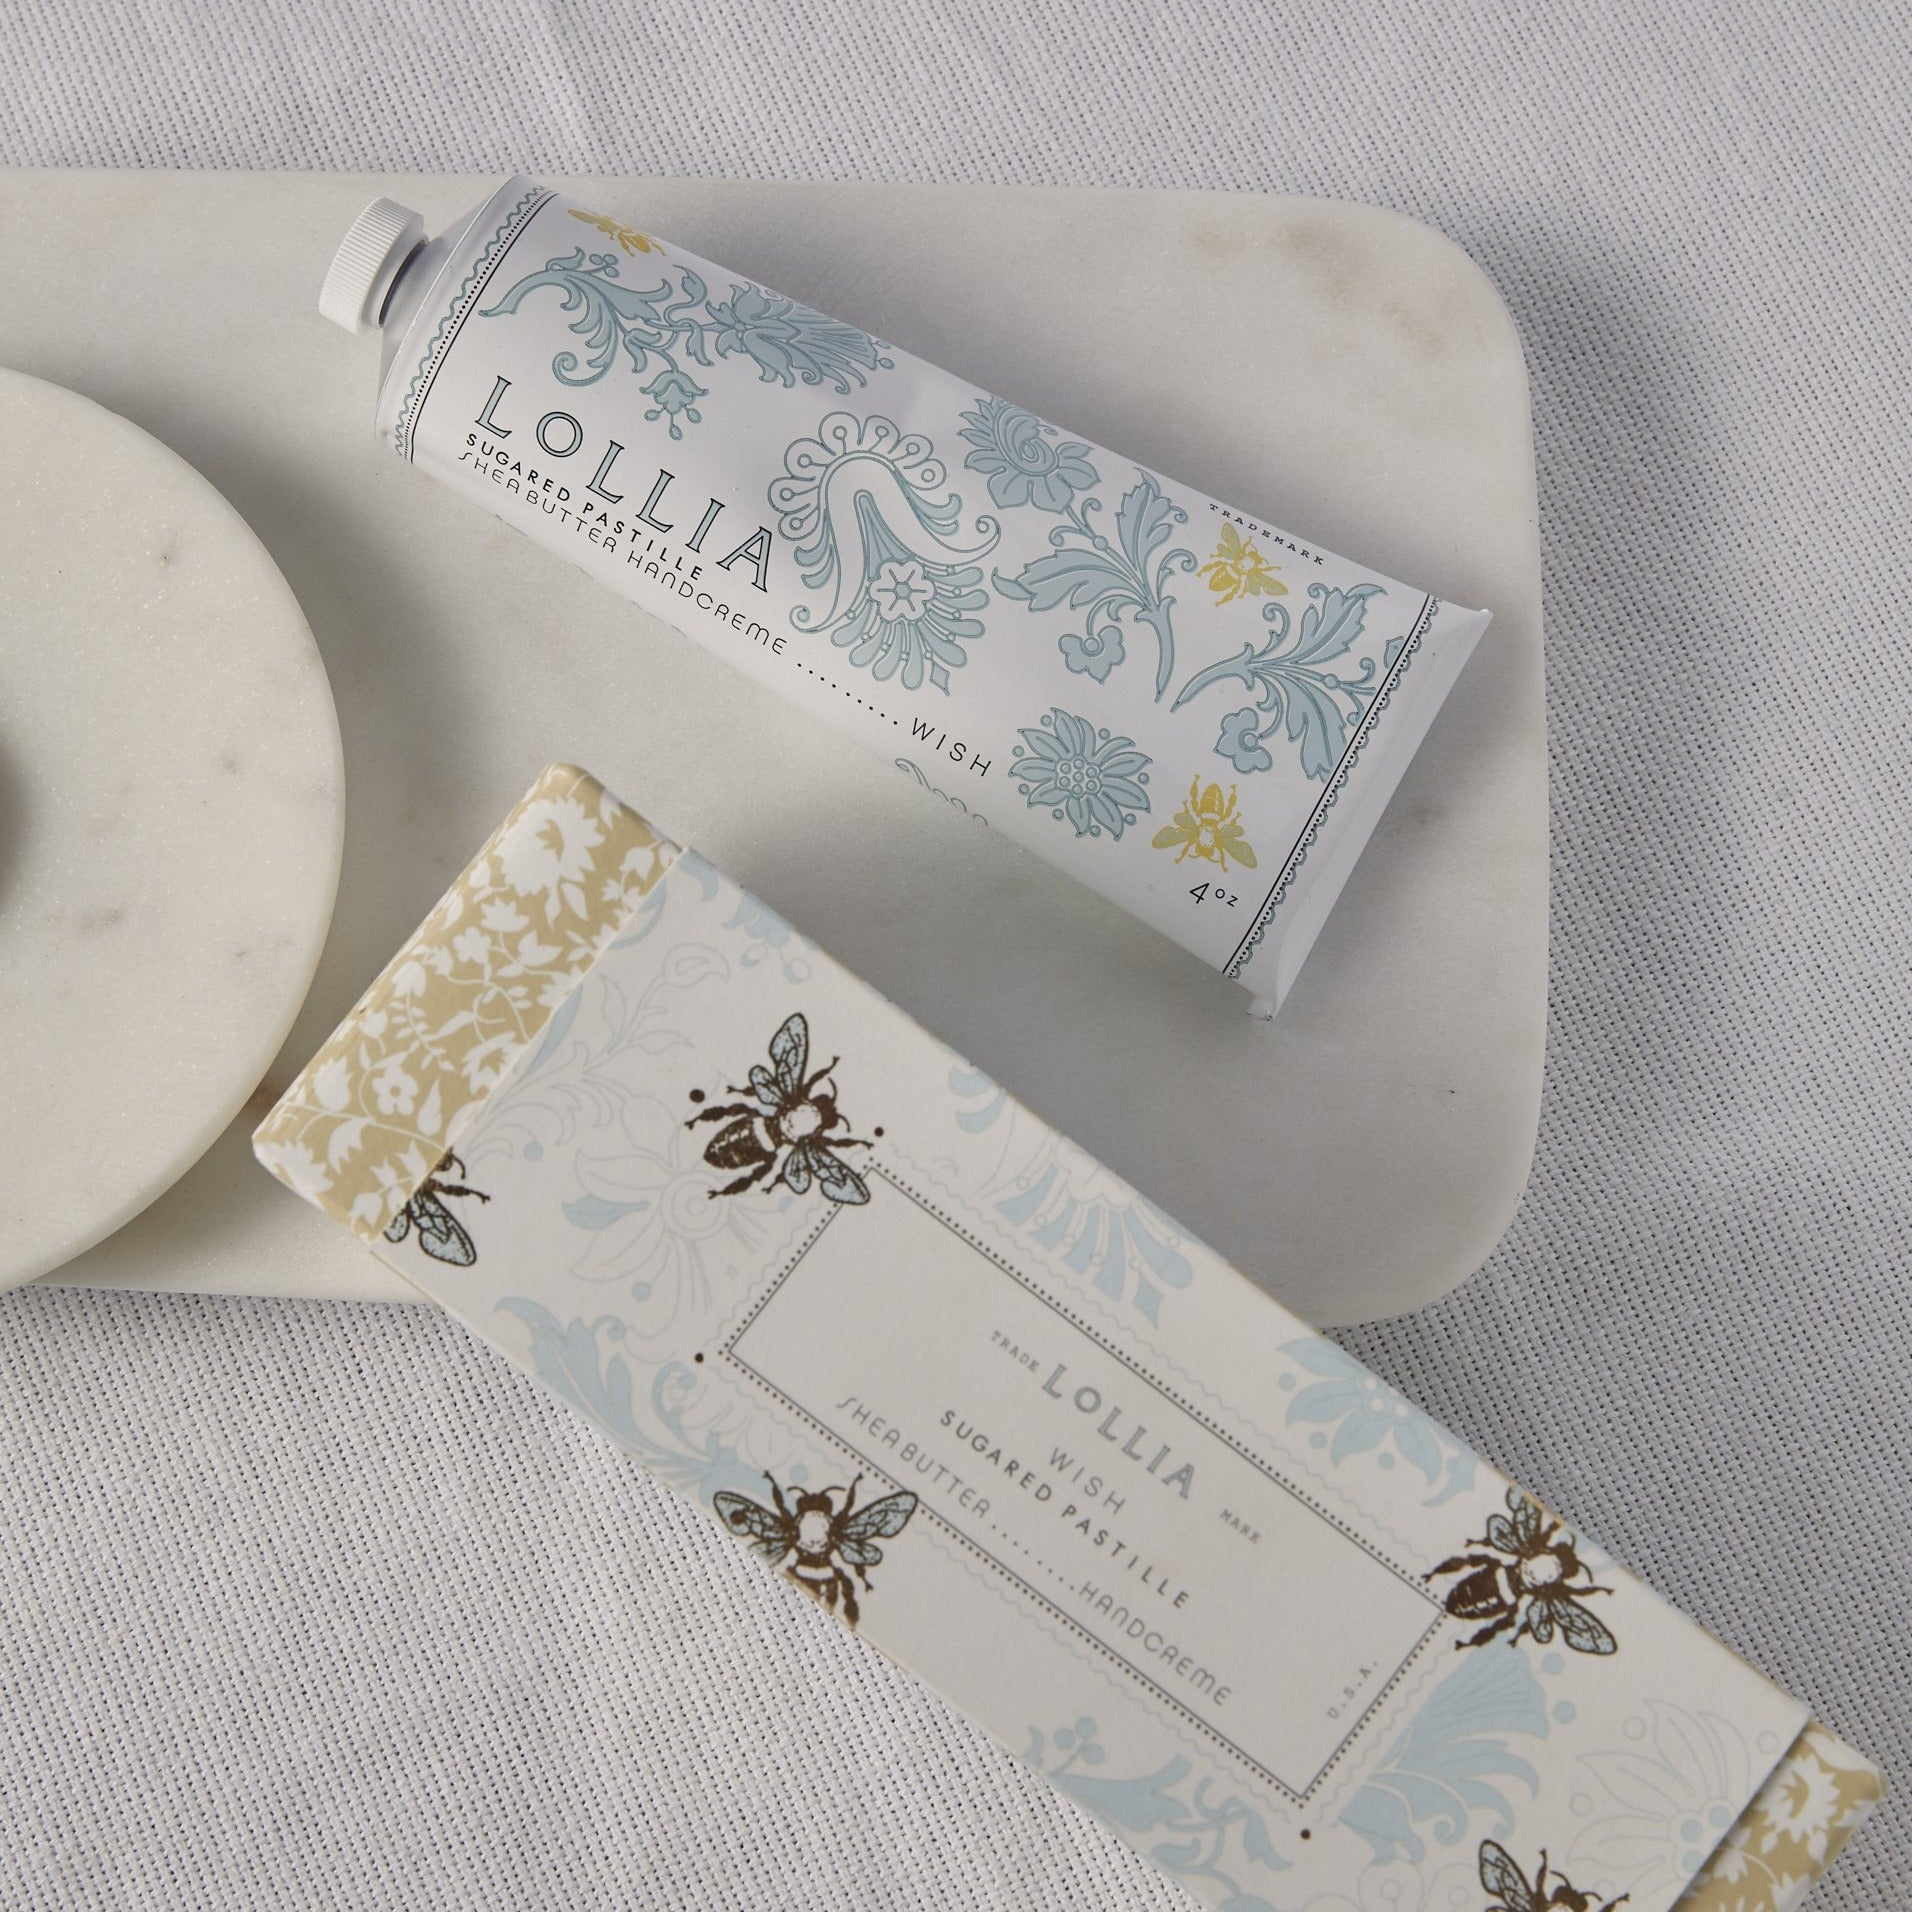 Wish Shea Butter Handcream - picnic-sf